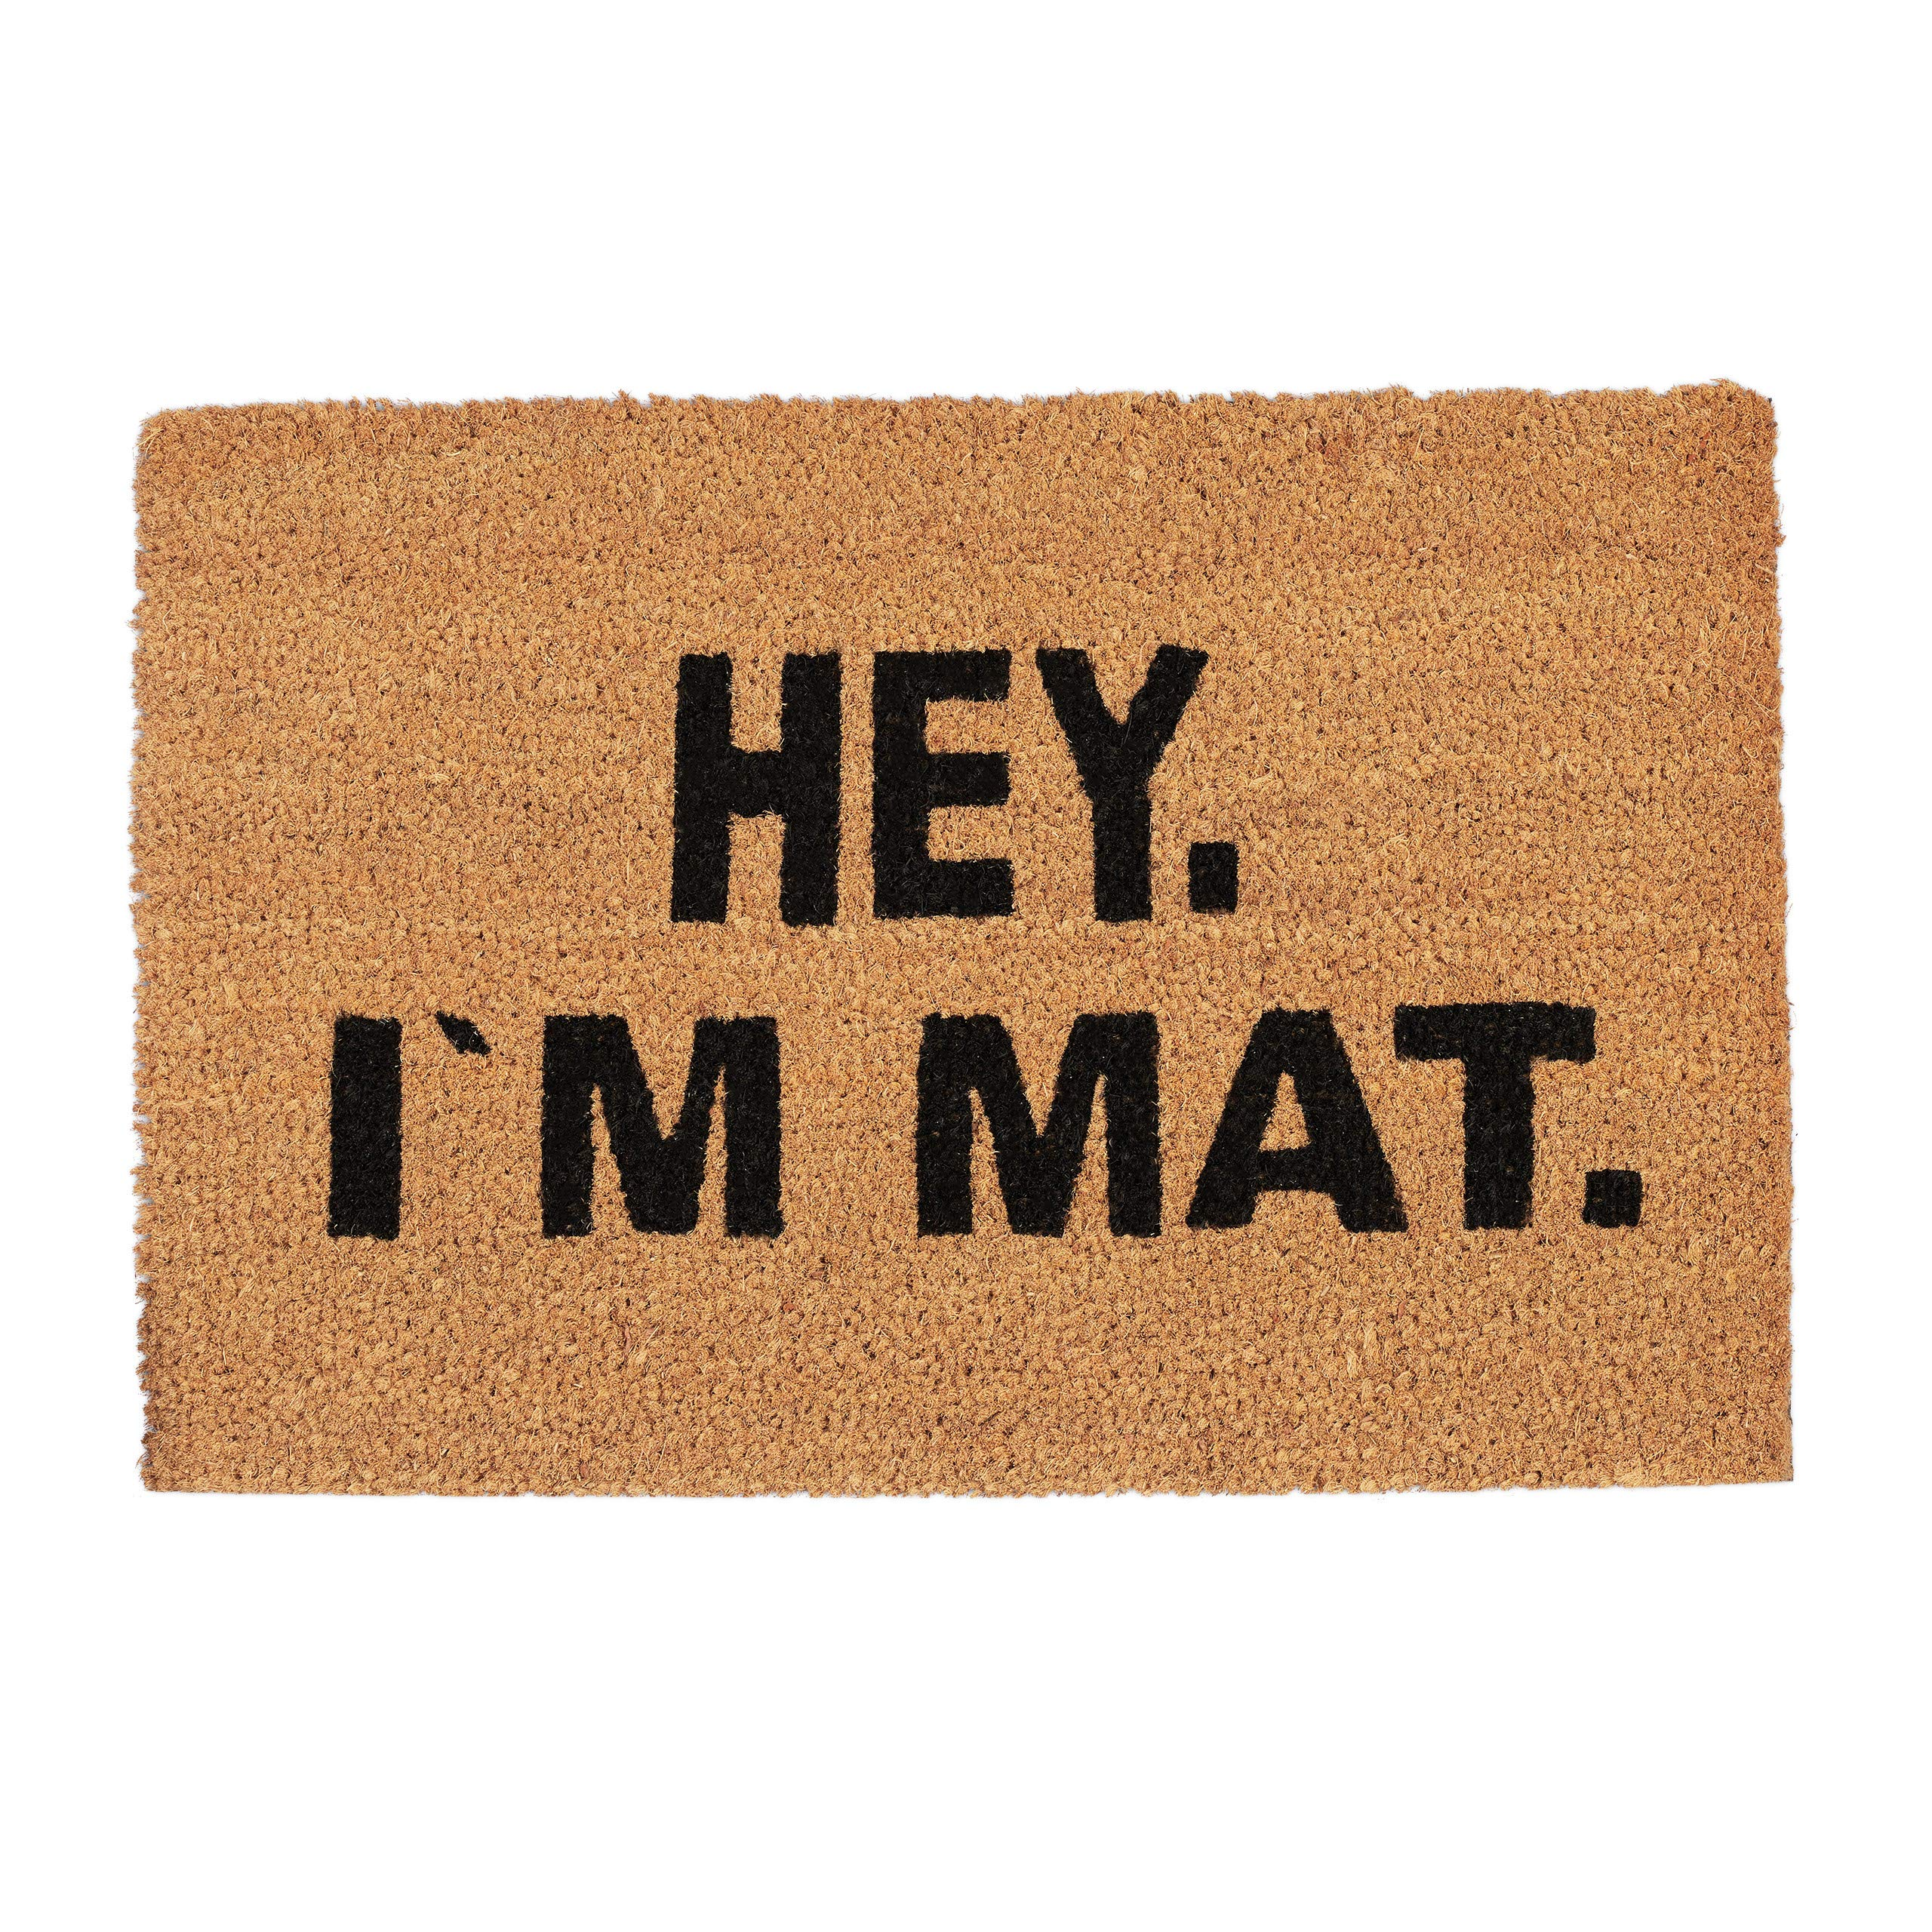 Relaxdays Doormat I'M MAT, Coconut Fibres, Non-Slip Welcome Mat, In- and Outdoors, WxD: 60 x 40 cm, Natural/Black